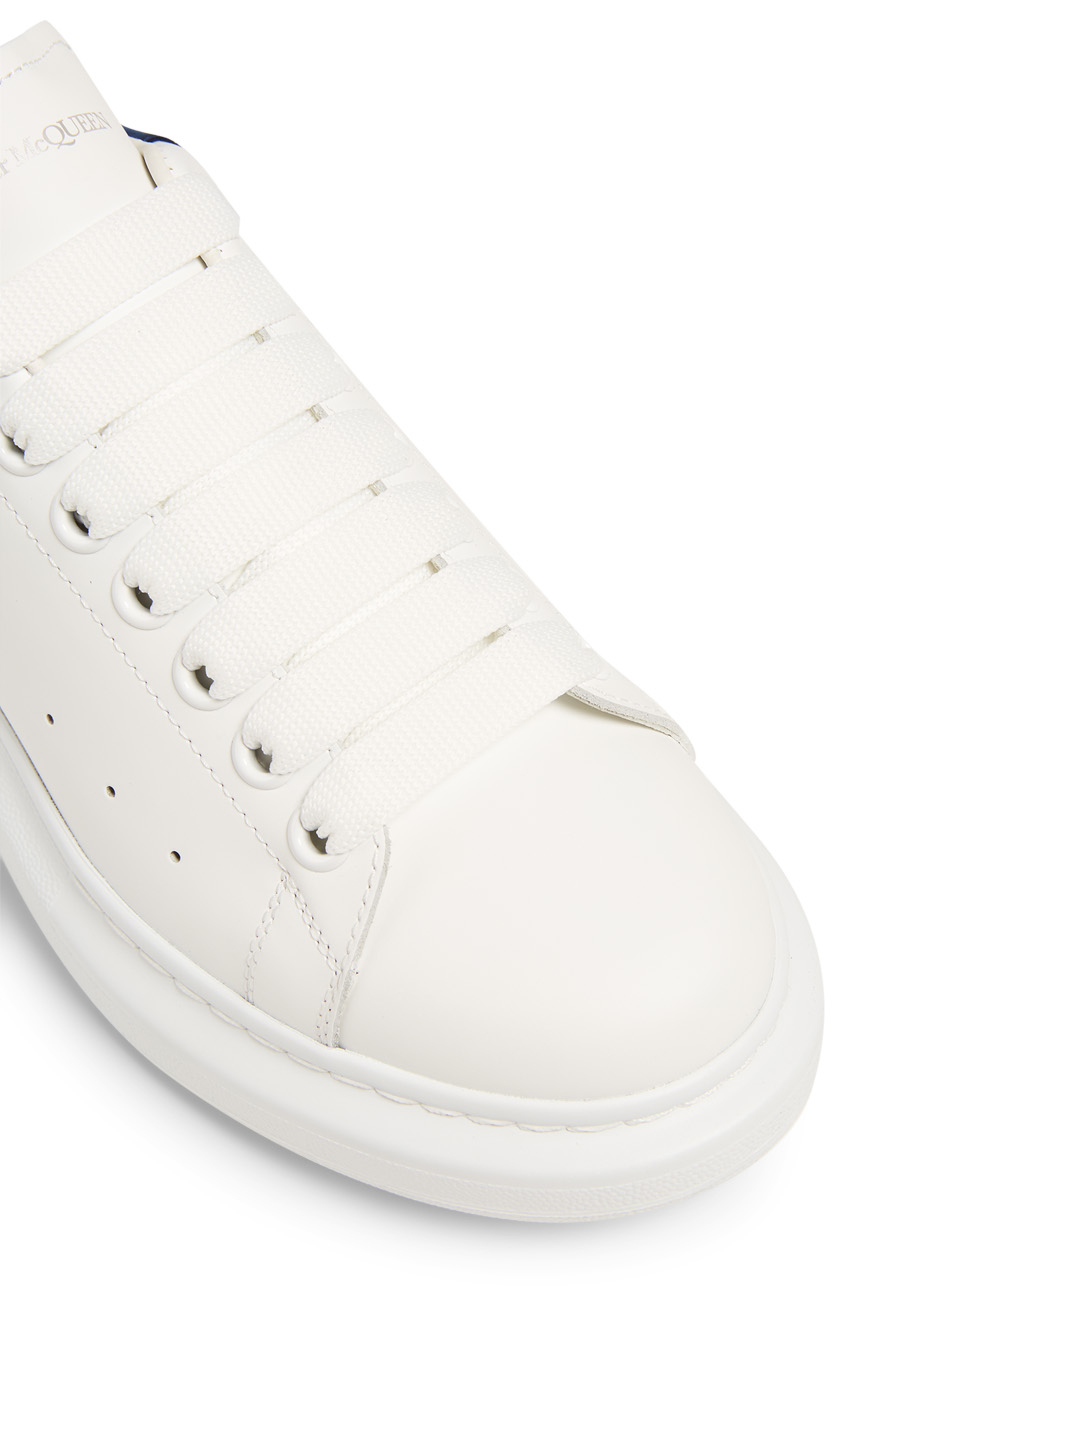 ALEXANDER MCQUEEN Oversized Leather Sneakers Women's White